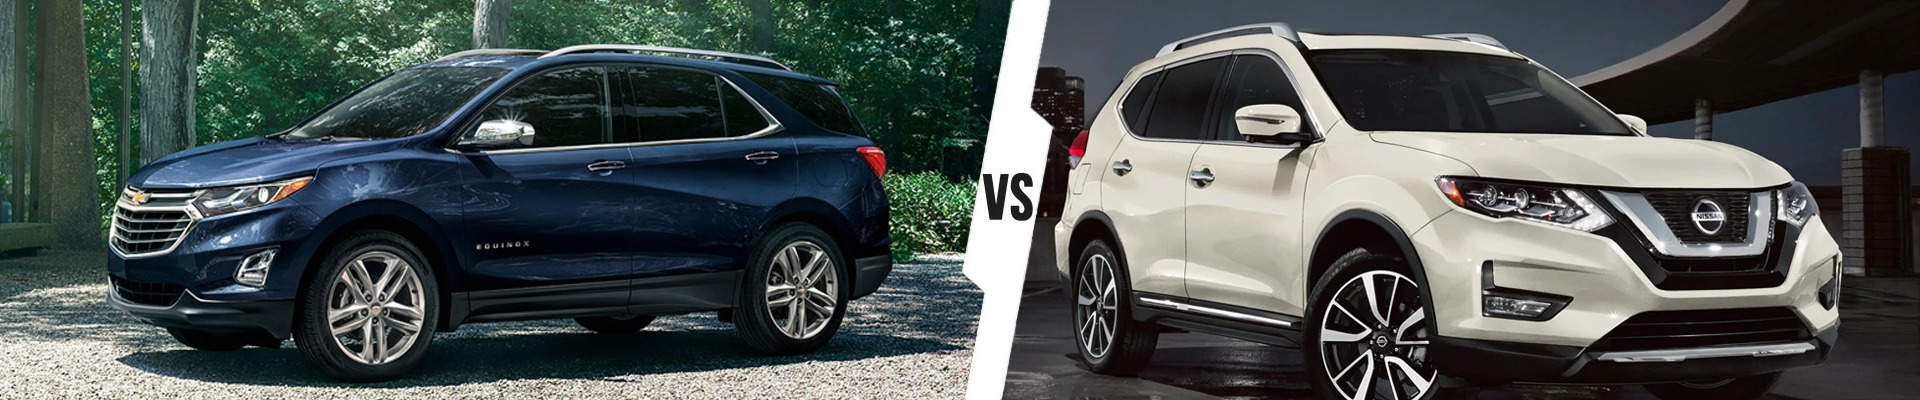 Compact Crossover SUV Comparison: 2021 Chevrolet Equinox Versus 2020 Nissan Rogue